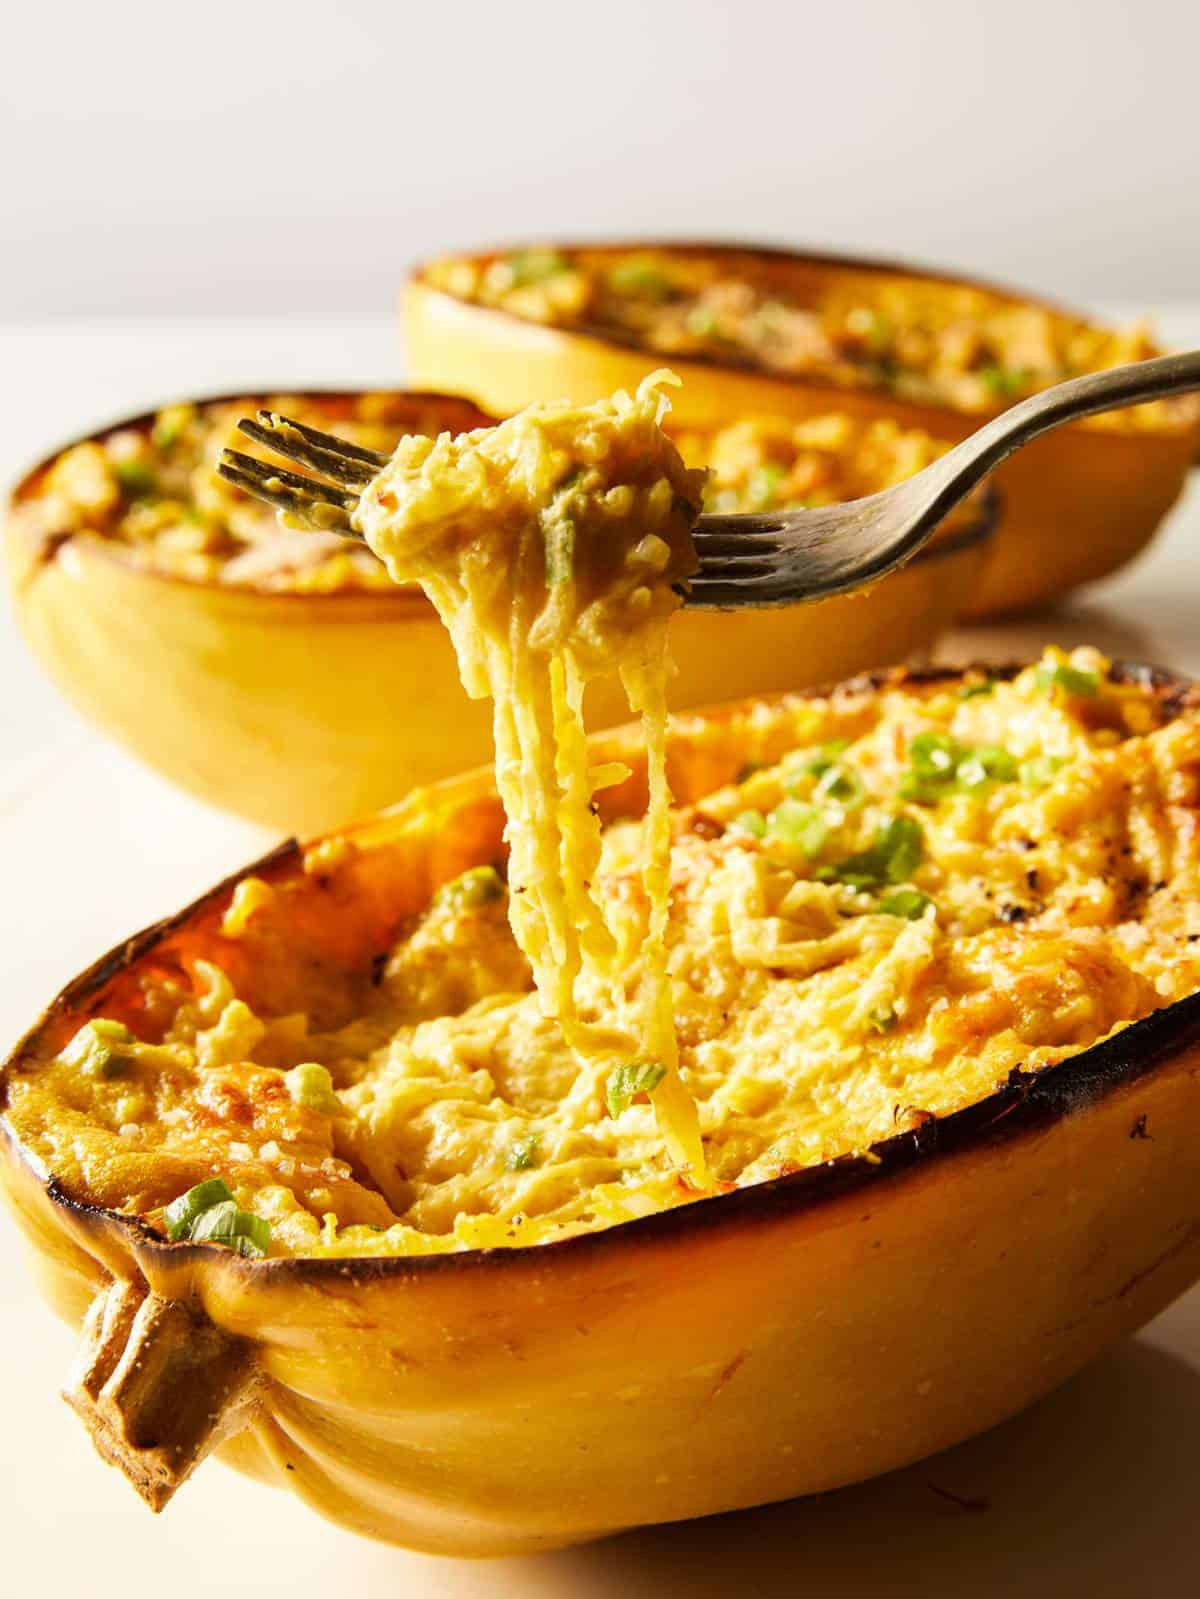 Vegan baked alfredo spaghetti squash with some squash twirled on a fork.